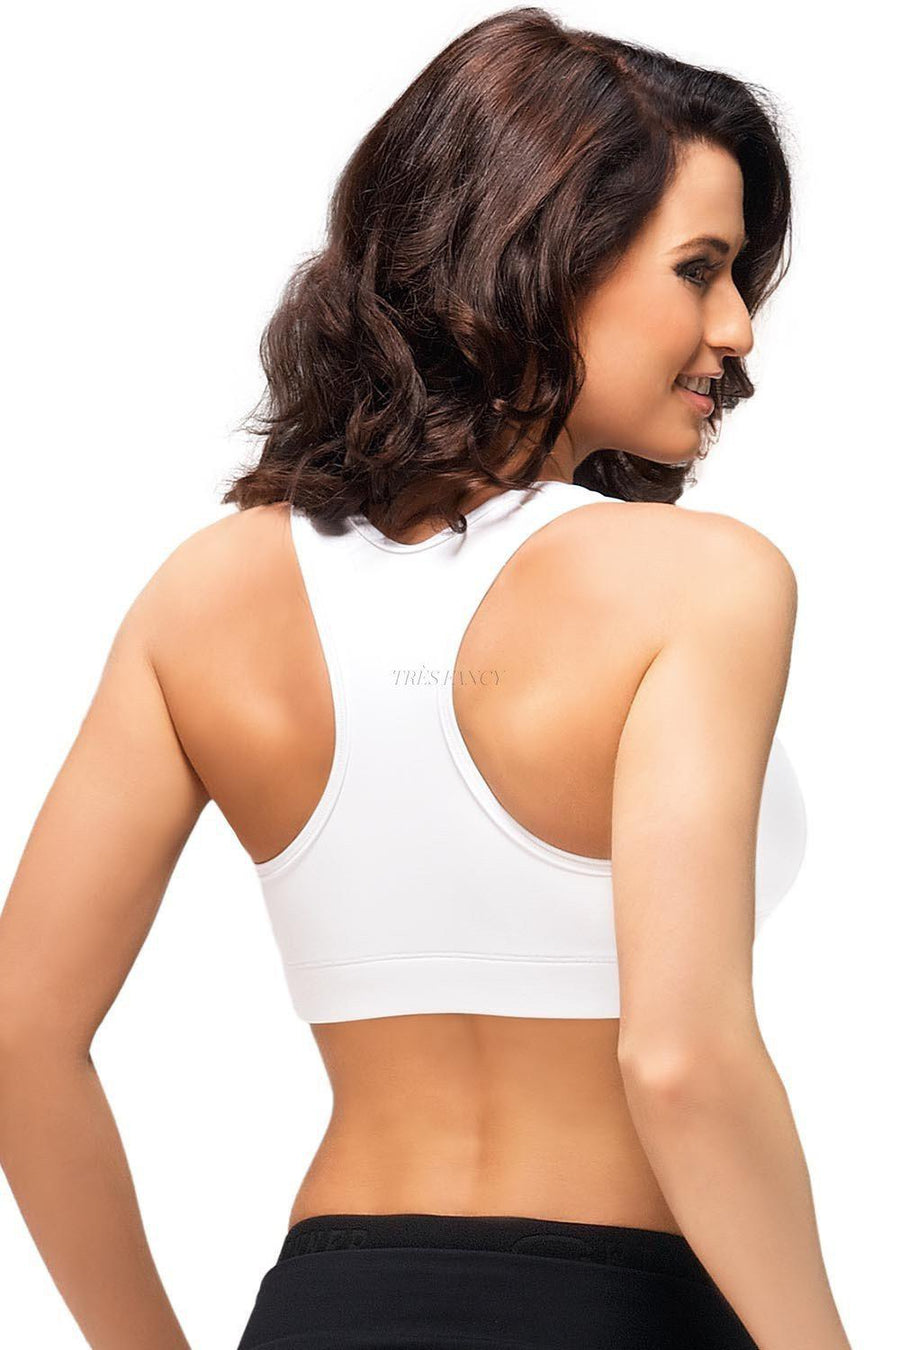 Bra 58593 GWINNER-Seamless, Shaping & Slimming Bras, Tops-GWINNER-white-L-TRESFANCY